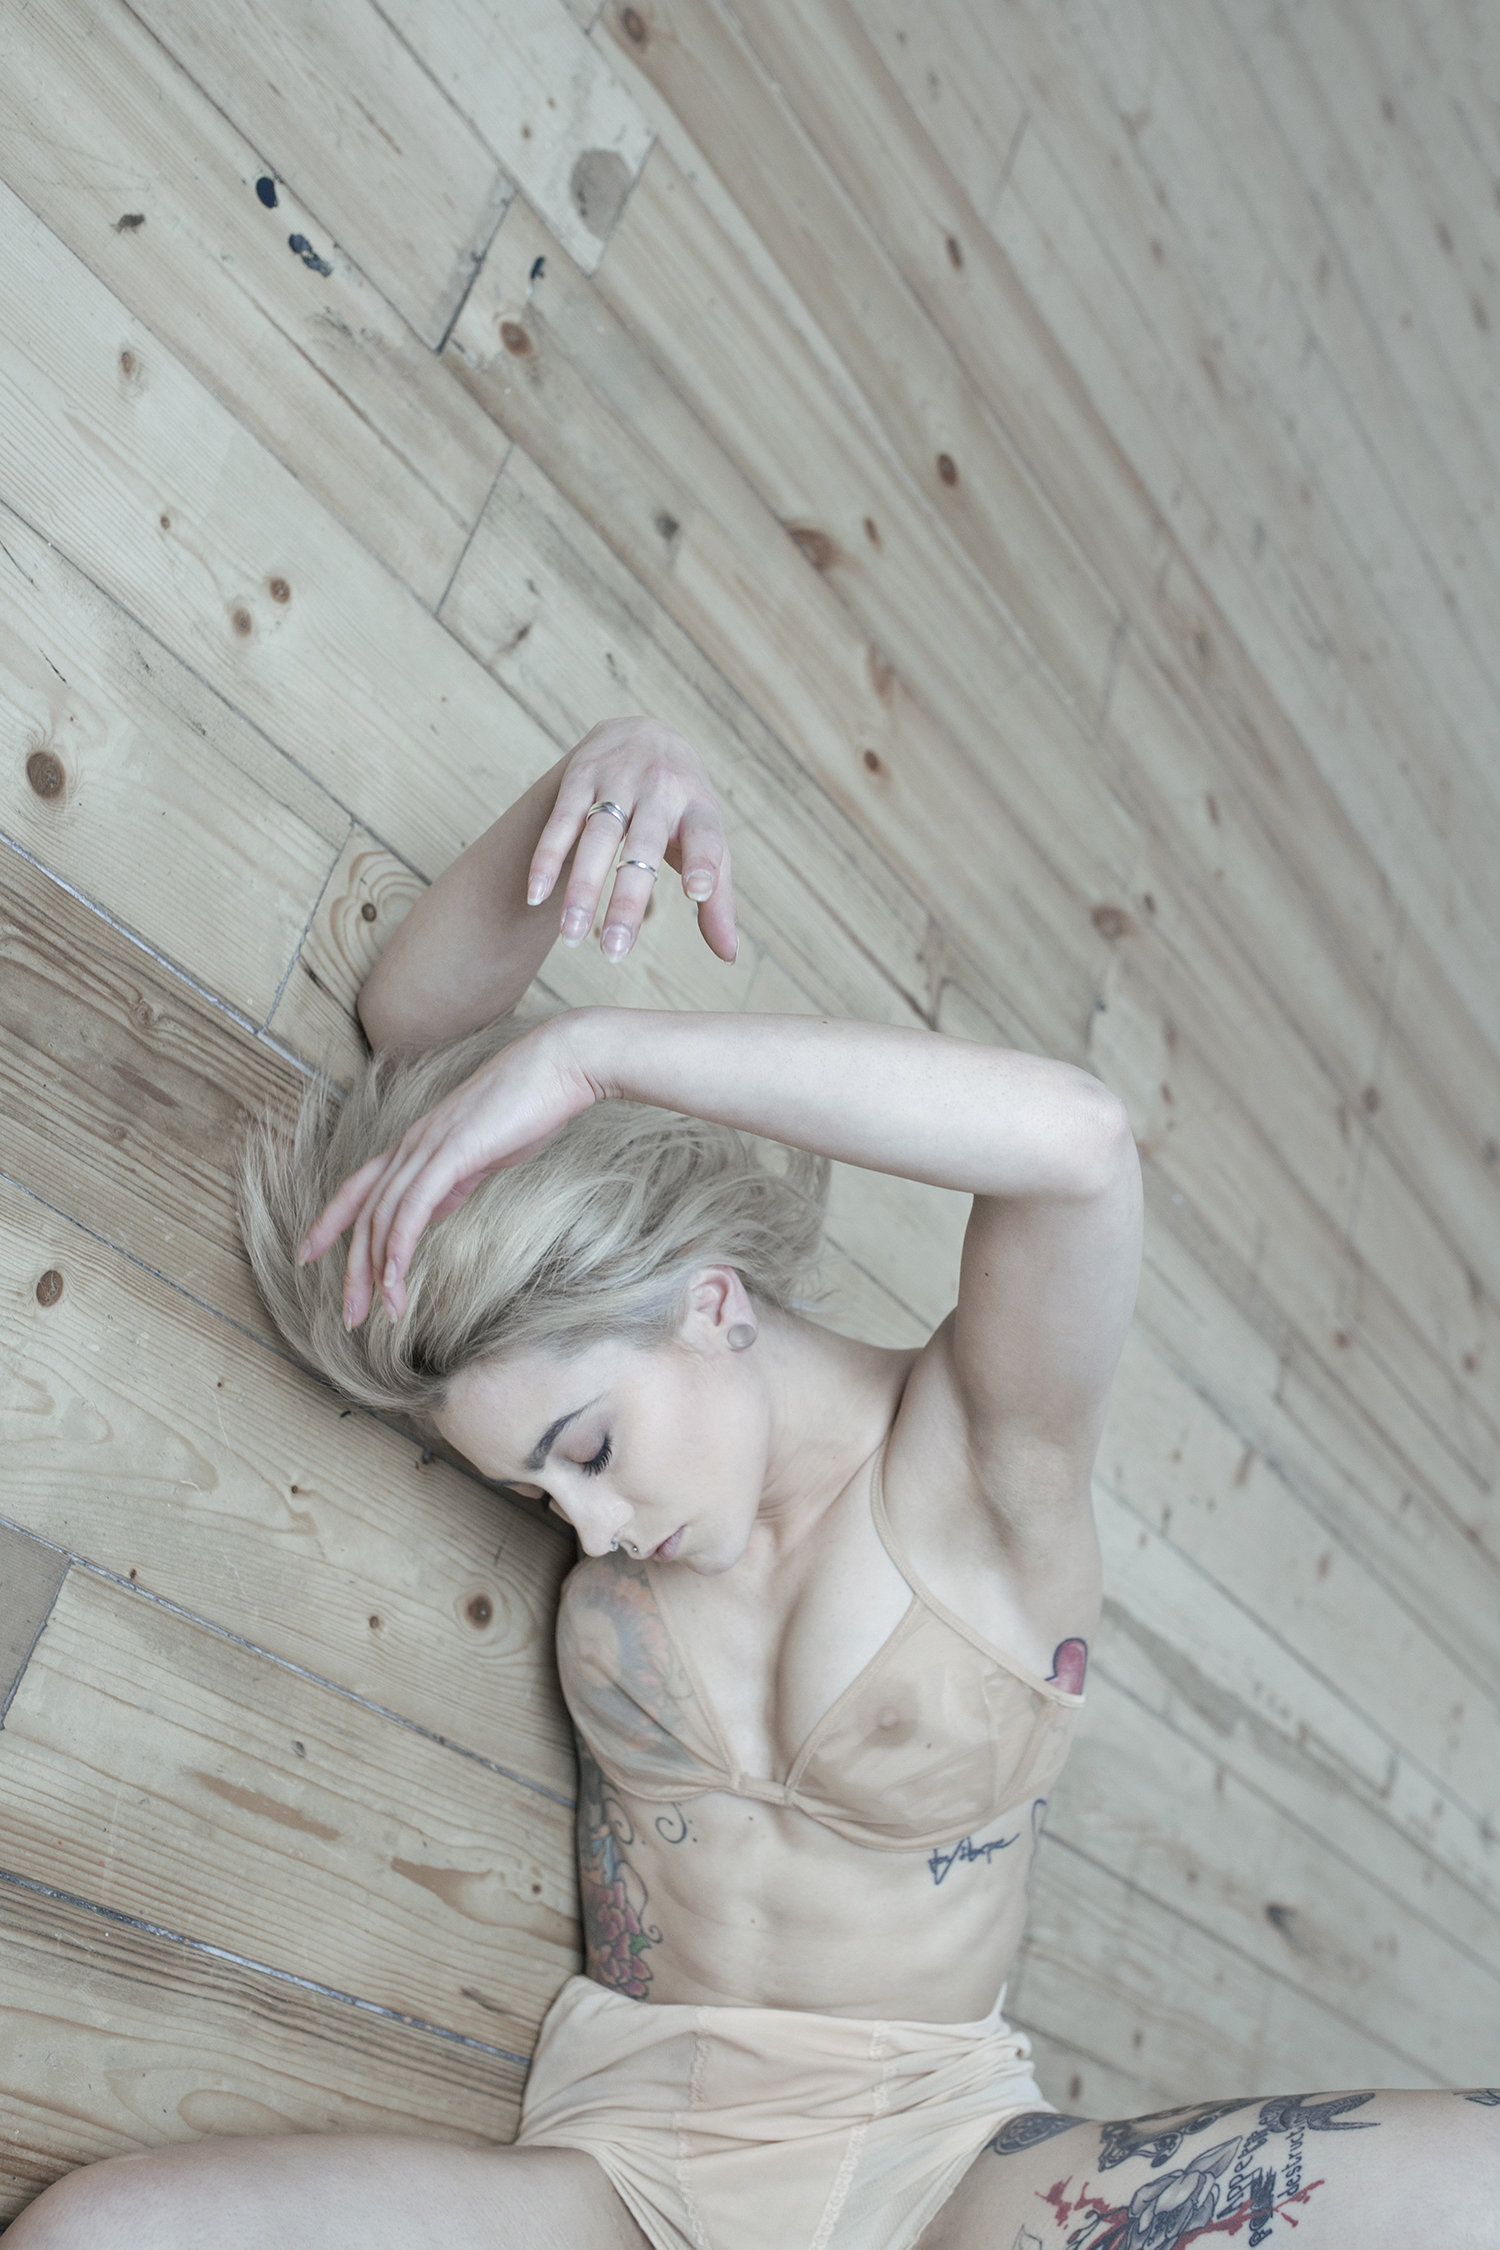 woman and bra, lying on floor